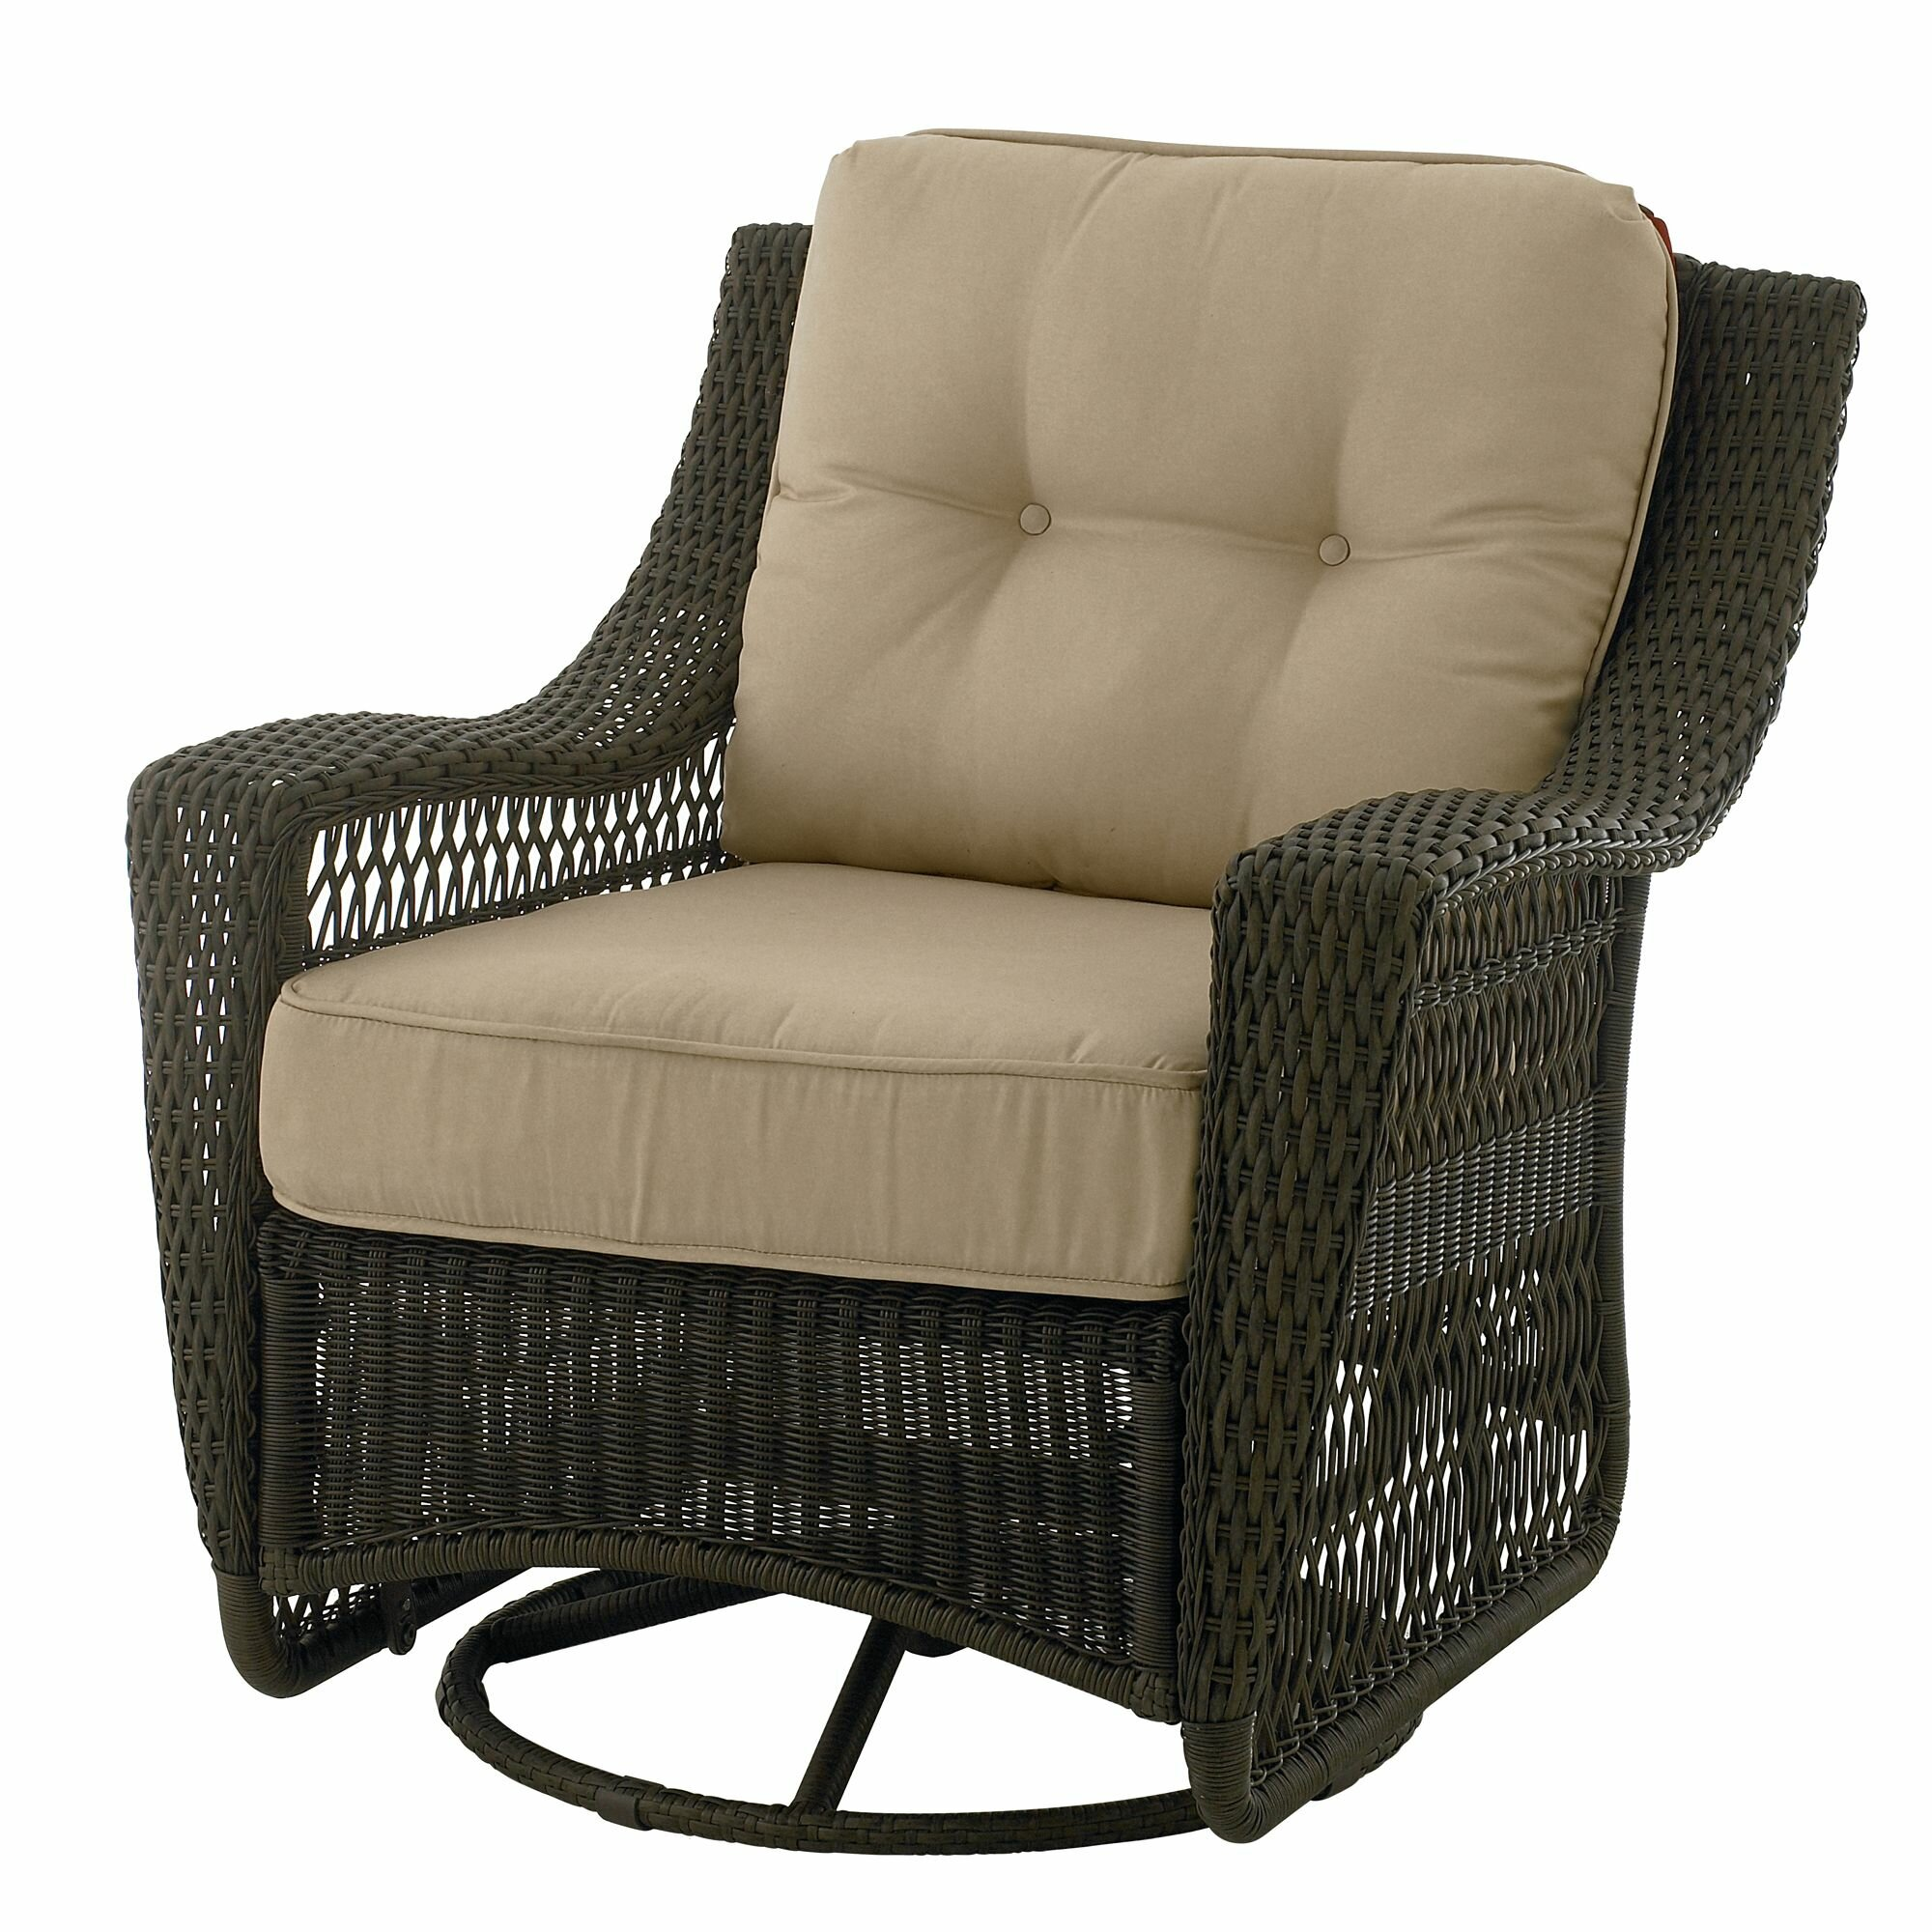 Sears Outlet Patio Furniture | Sears Patio Furniture Clearance Sale | Cheap Patio Chairs